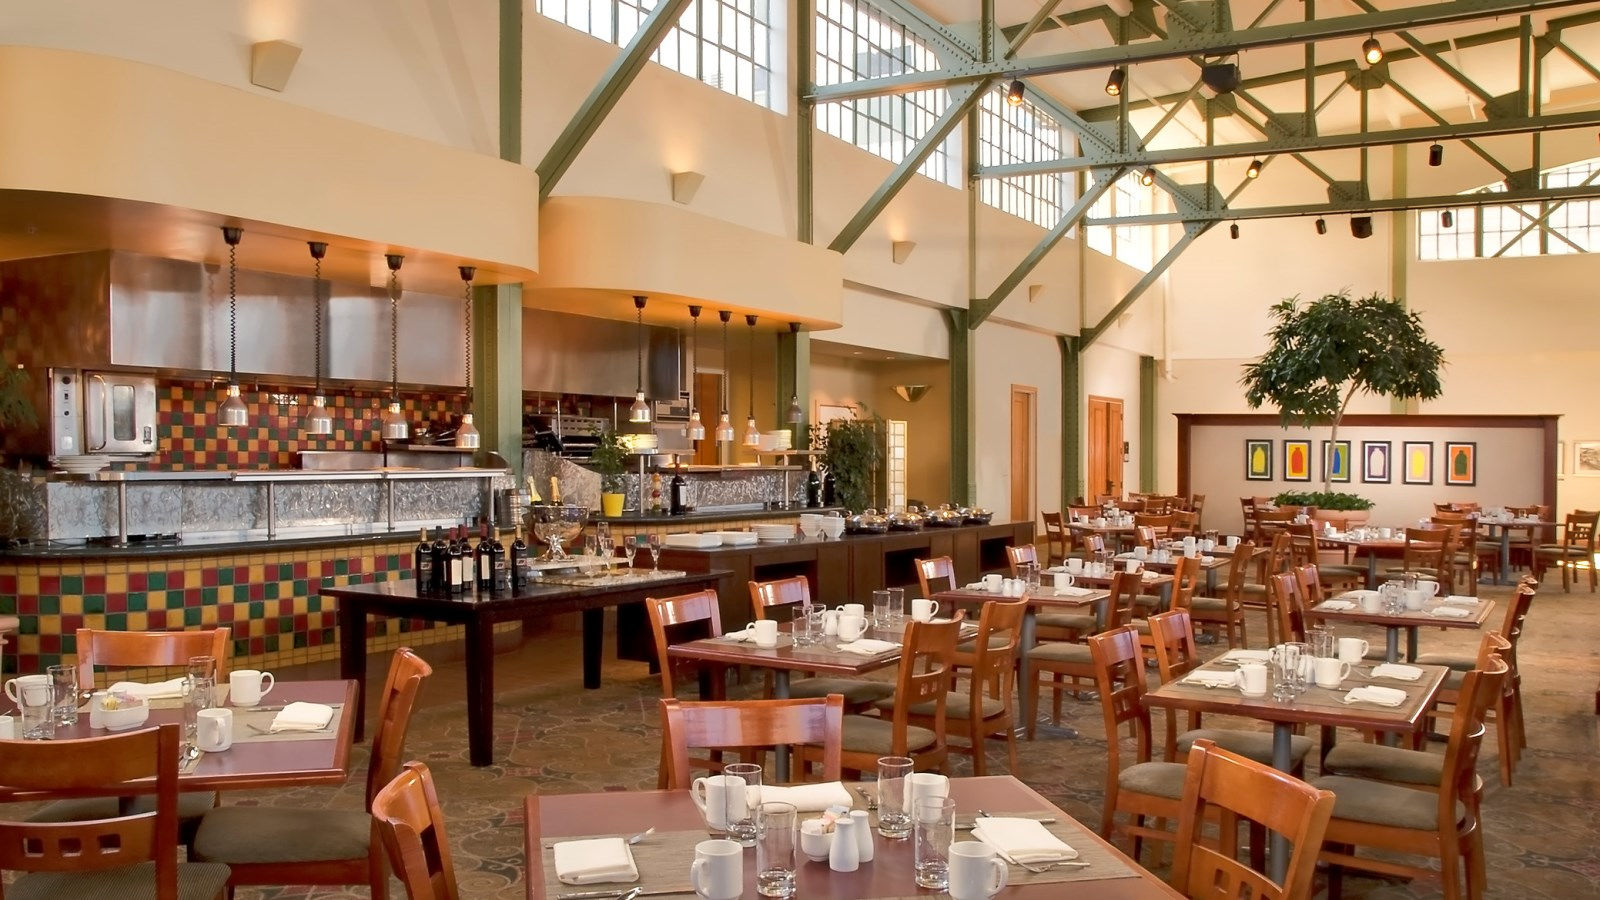 Sacramento Hotel Features - Morgan's Restaurant